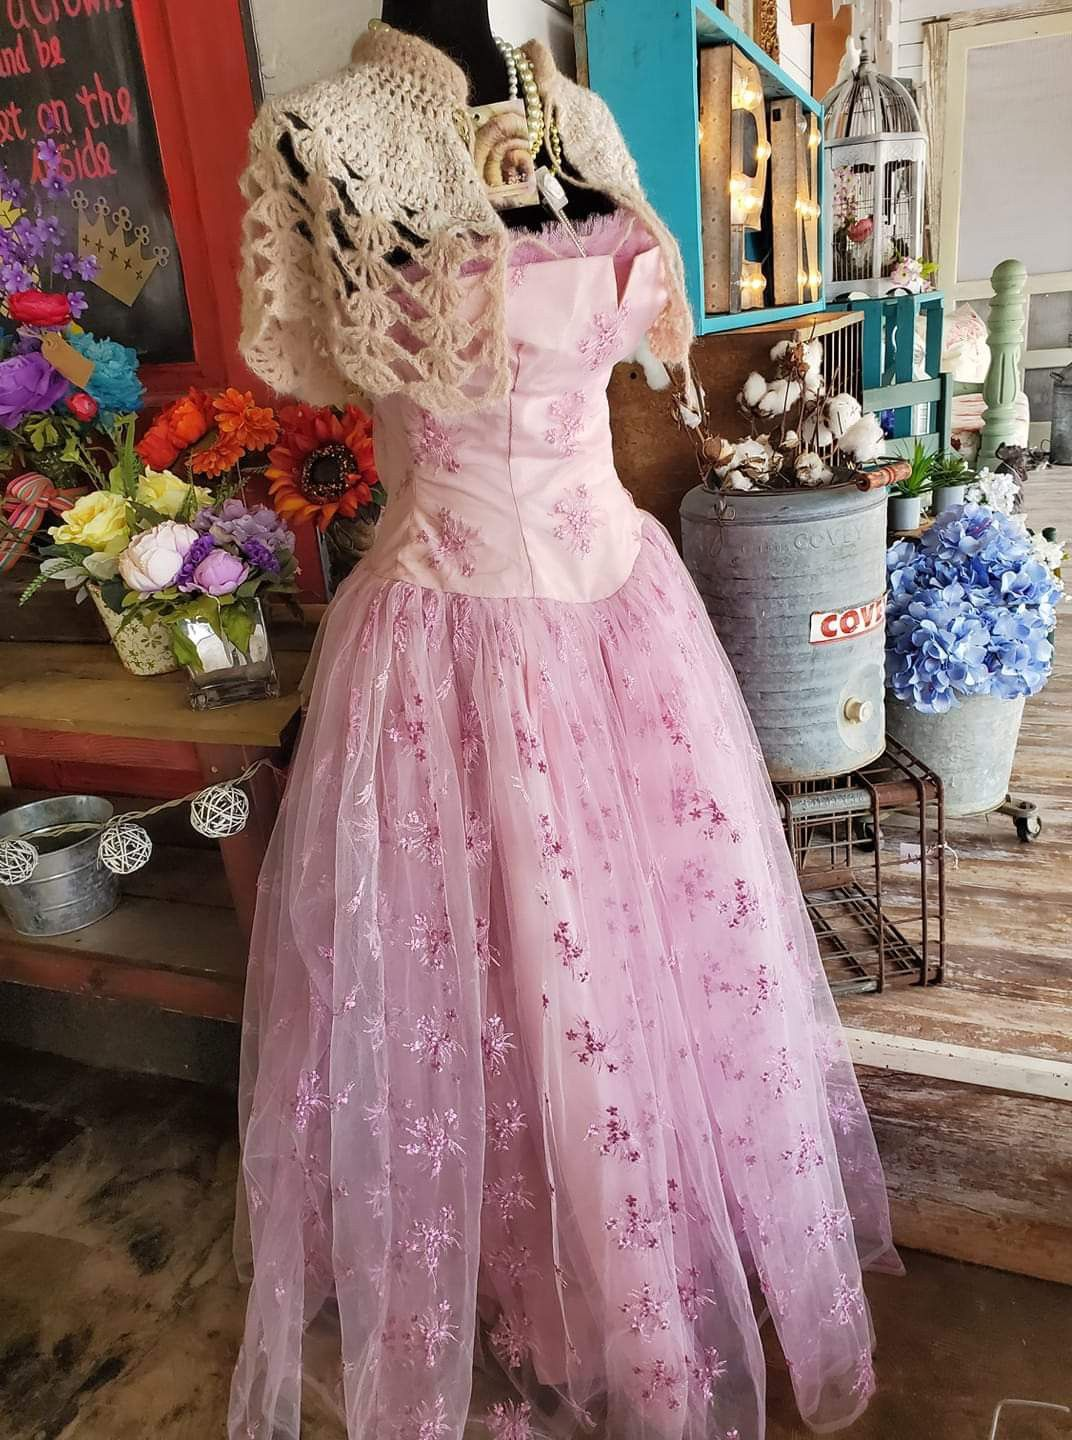 Pin By Dipsey Doodle On Pink Fashion Victorian Dress Dresses [ 1440 x 1072 Pixel ]